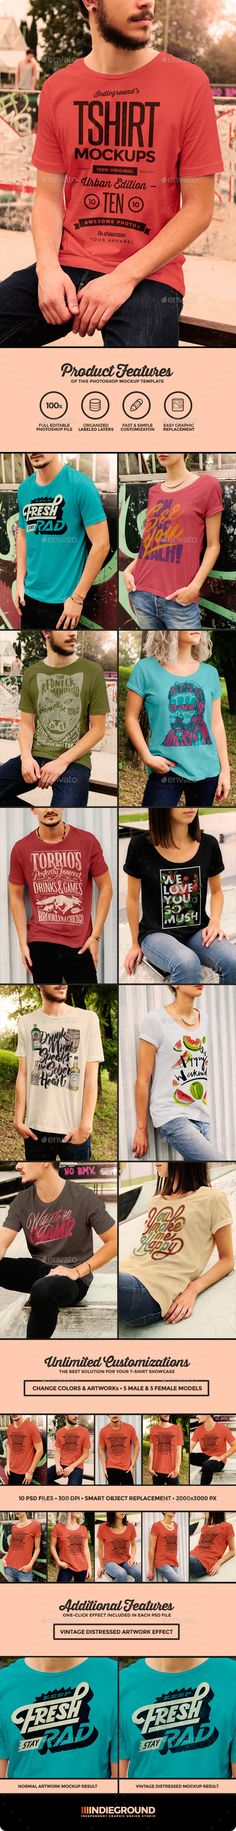 """This graphic resource gives you a quick & easy possibility to apply your artwork, text, image, logo and every kind of graphic on a man & woman t-shirts located in an urban scene. You just need to replace them into the smart object. Create a great apparel showcase for your website, a facebook cover, a clothing magazine or a fashion website banner. This offer include 2 different male models each in 4 different poses and also the """"Vintage Distressed Effect"""" that applies on your artwork to give…"""